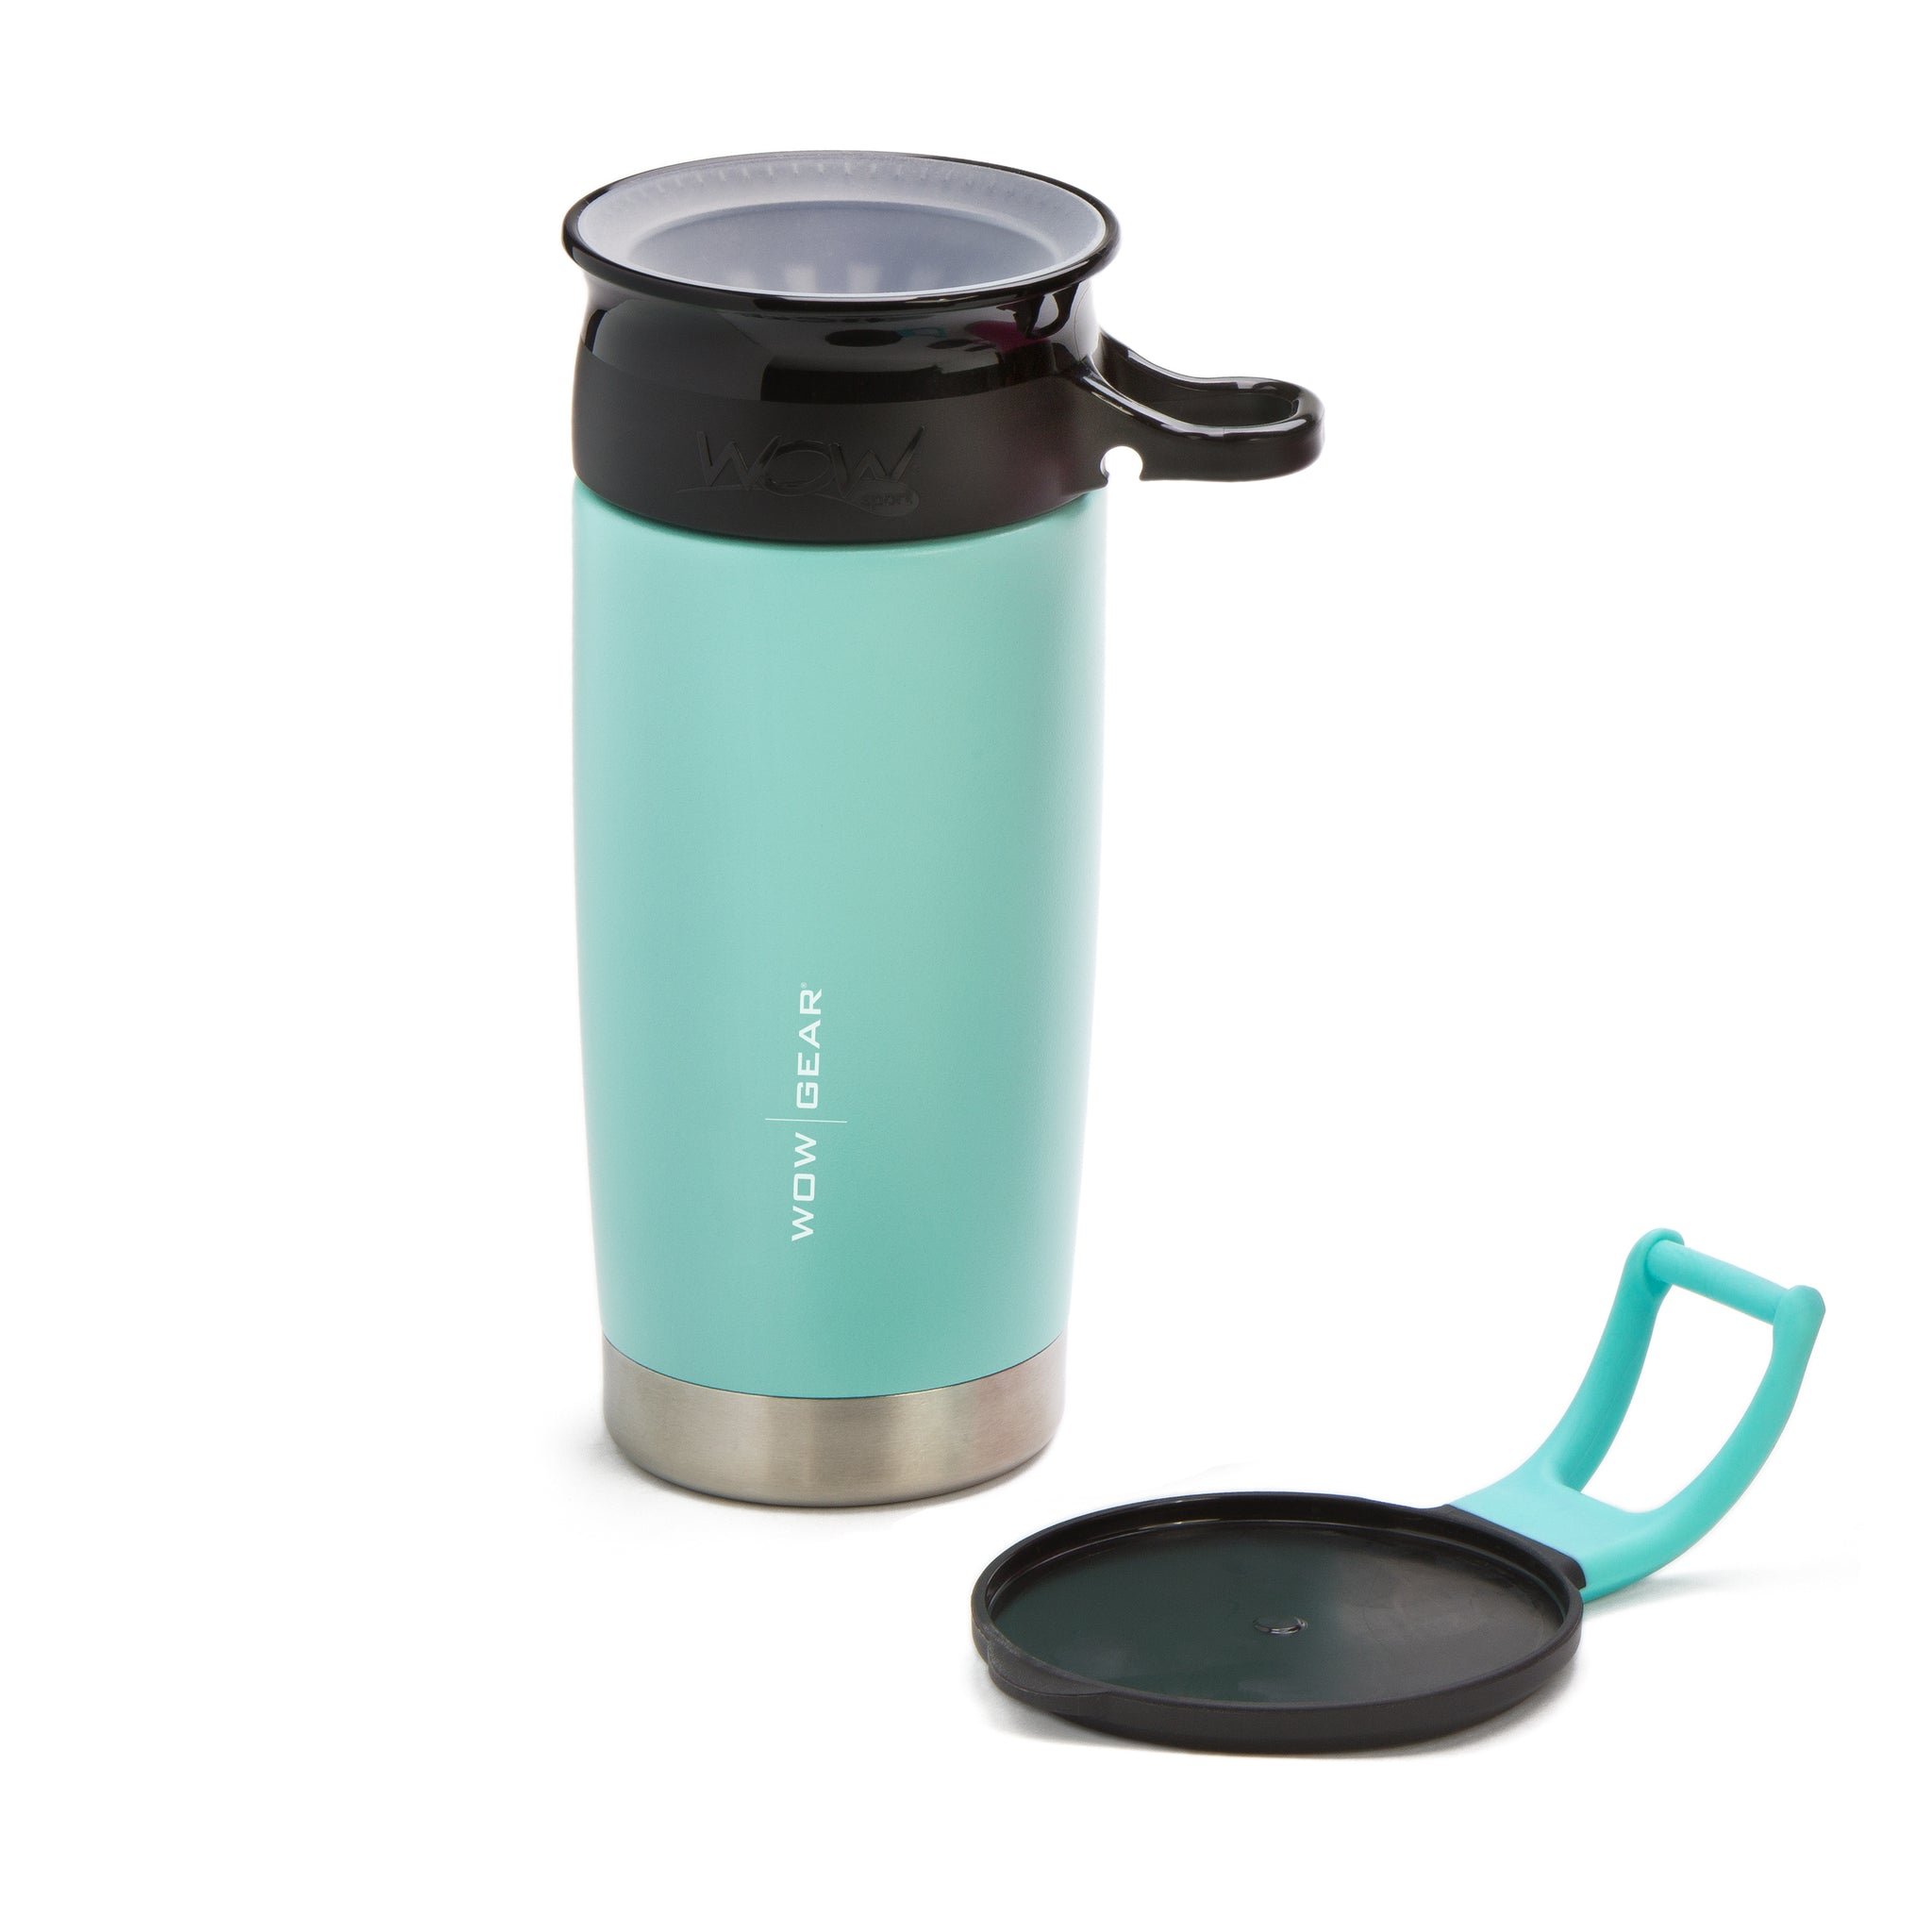 WOW GEAR Stainless Insulated 360 Sports Bottle - Turquoise, 13.5 OZ /